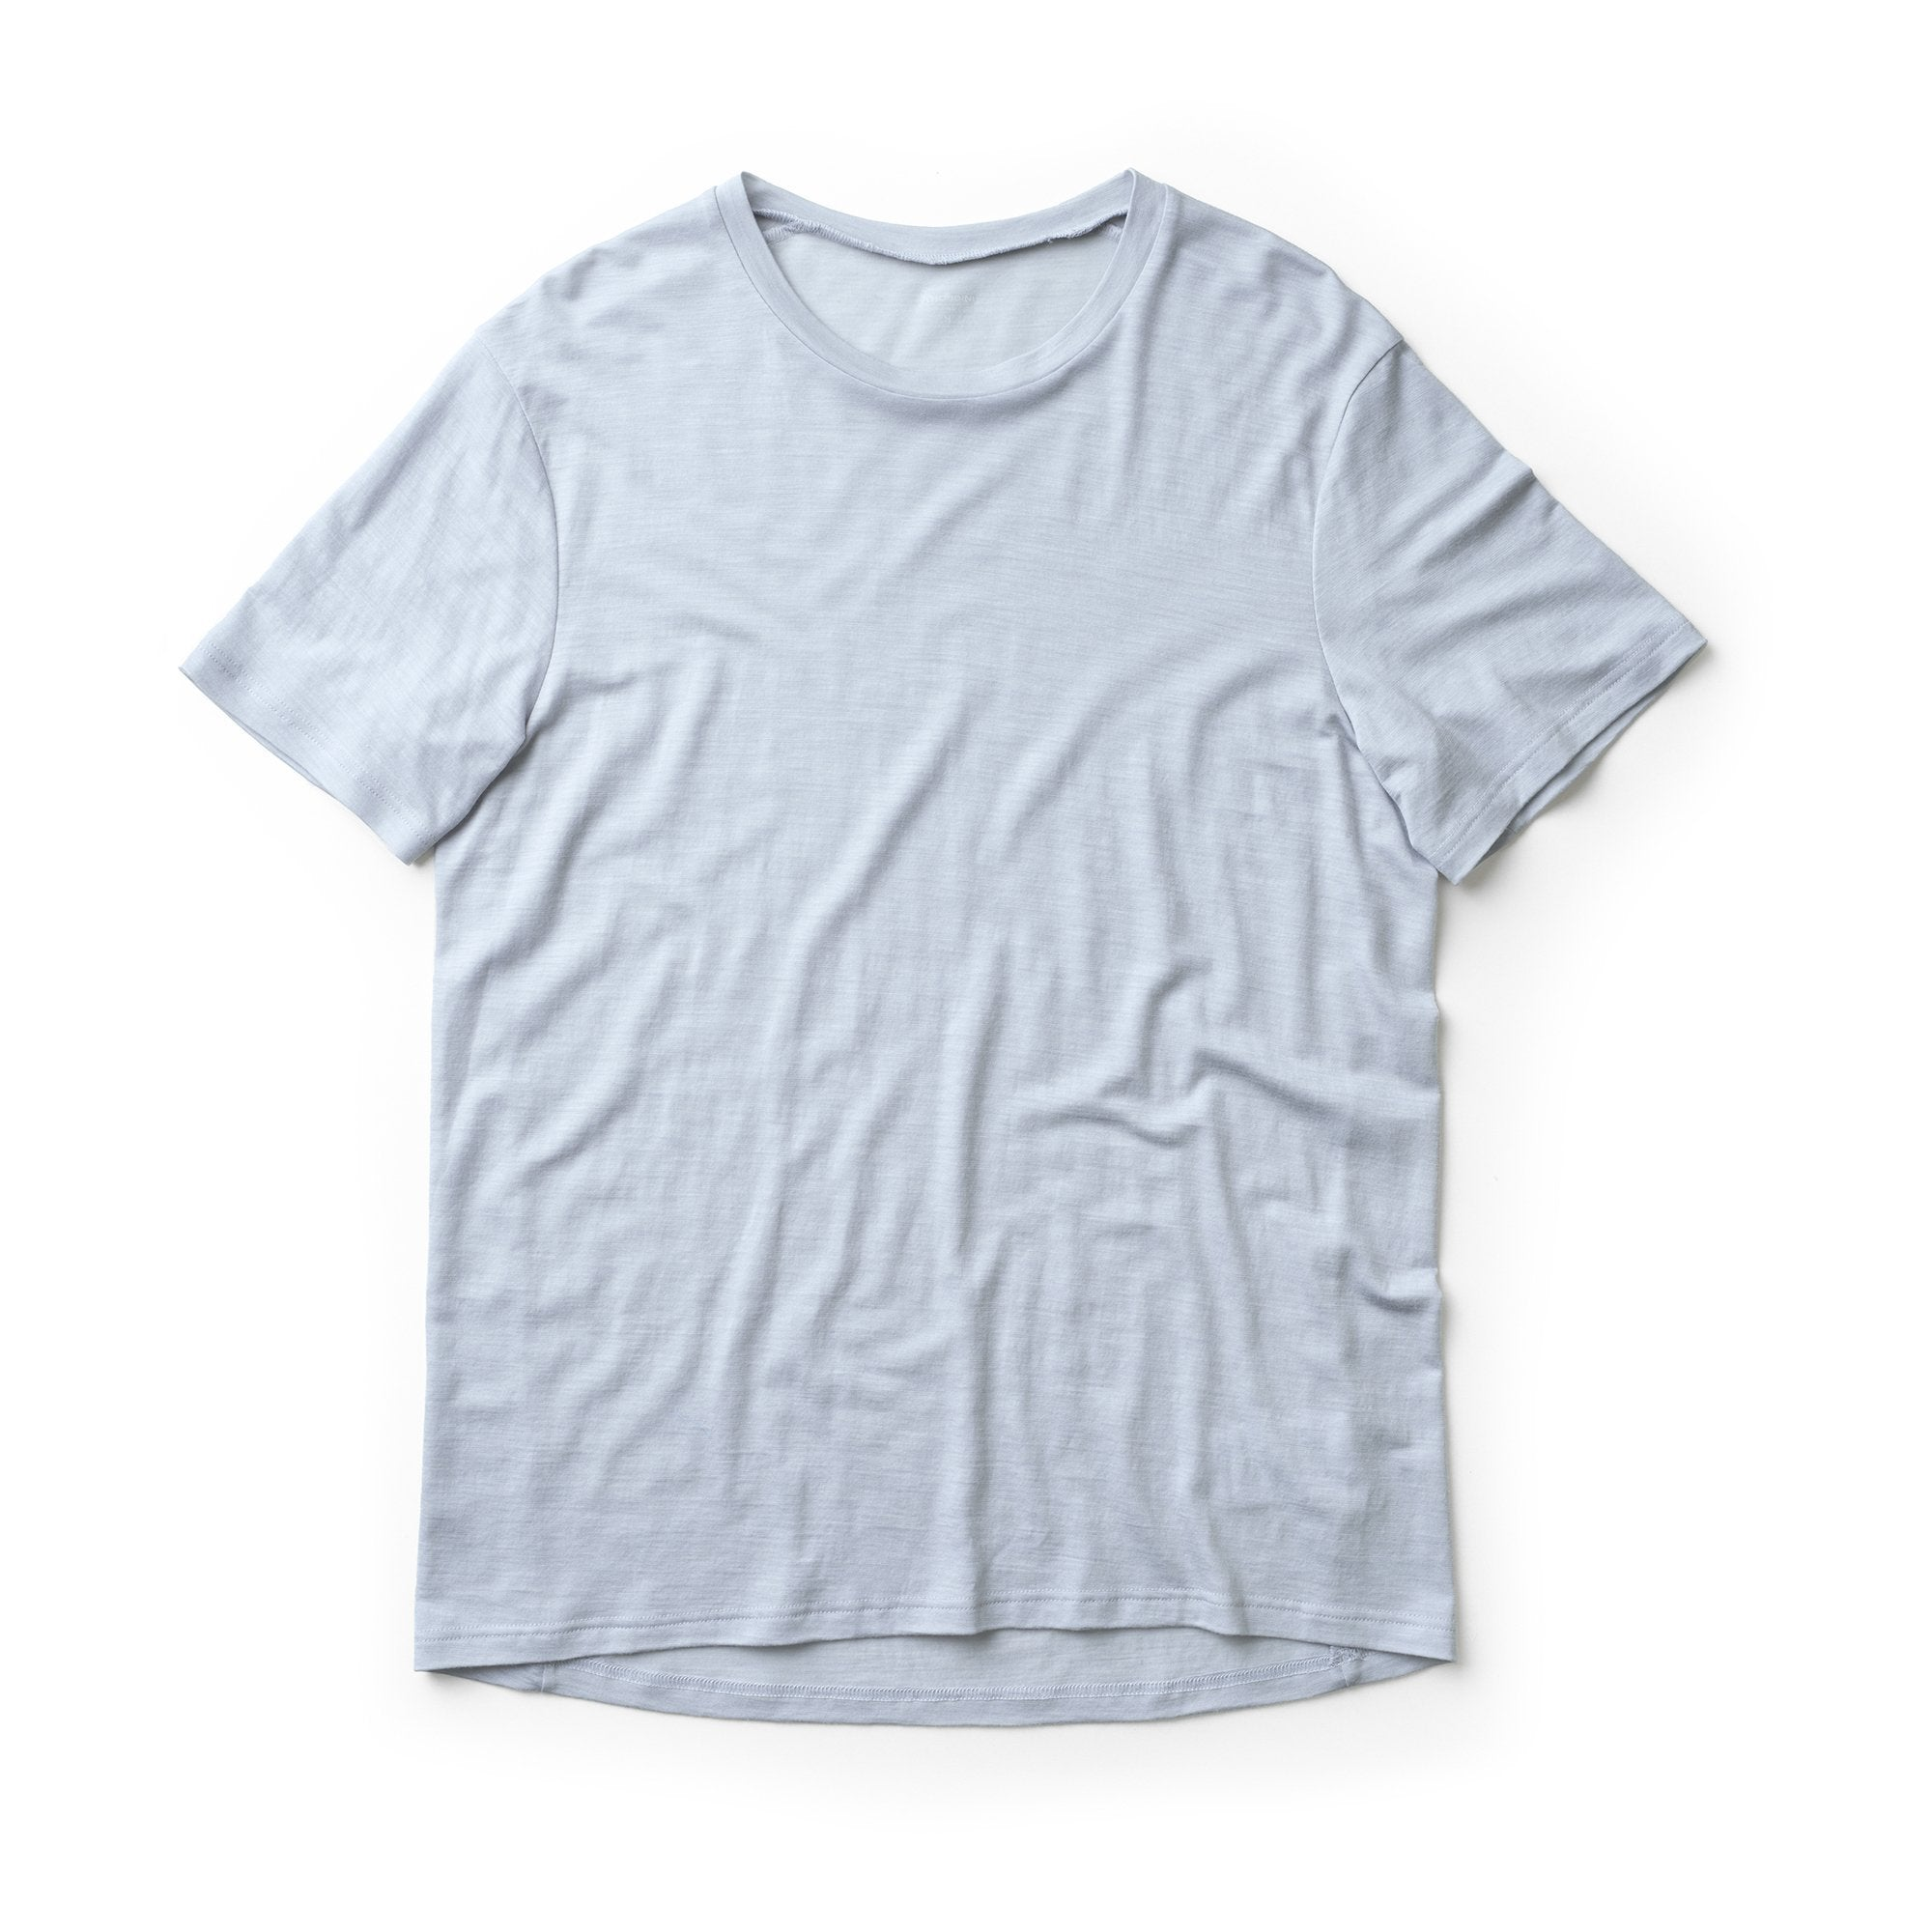 Activist Tee - Ground Grey - Herr - Vindpinad